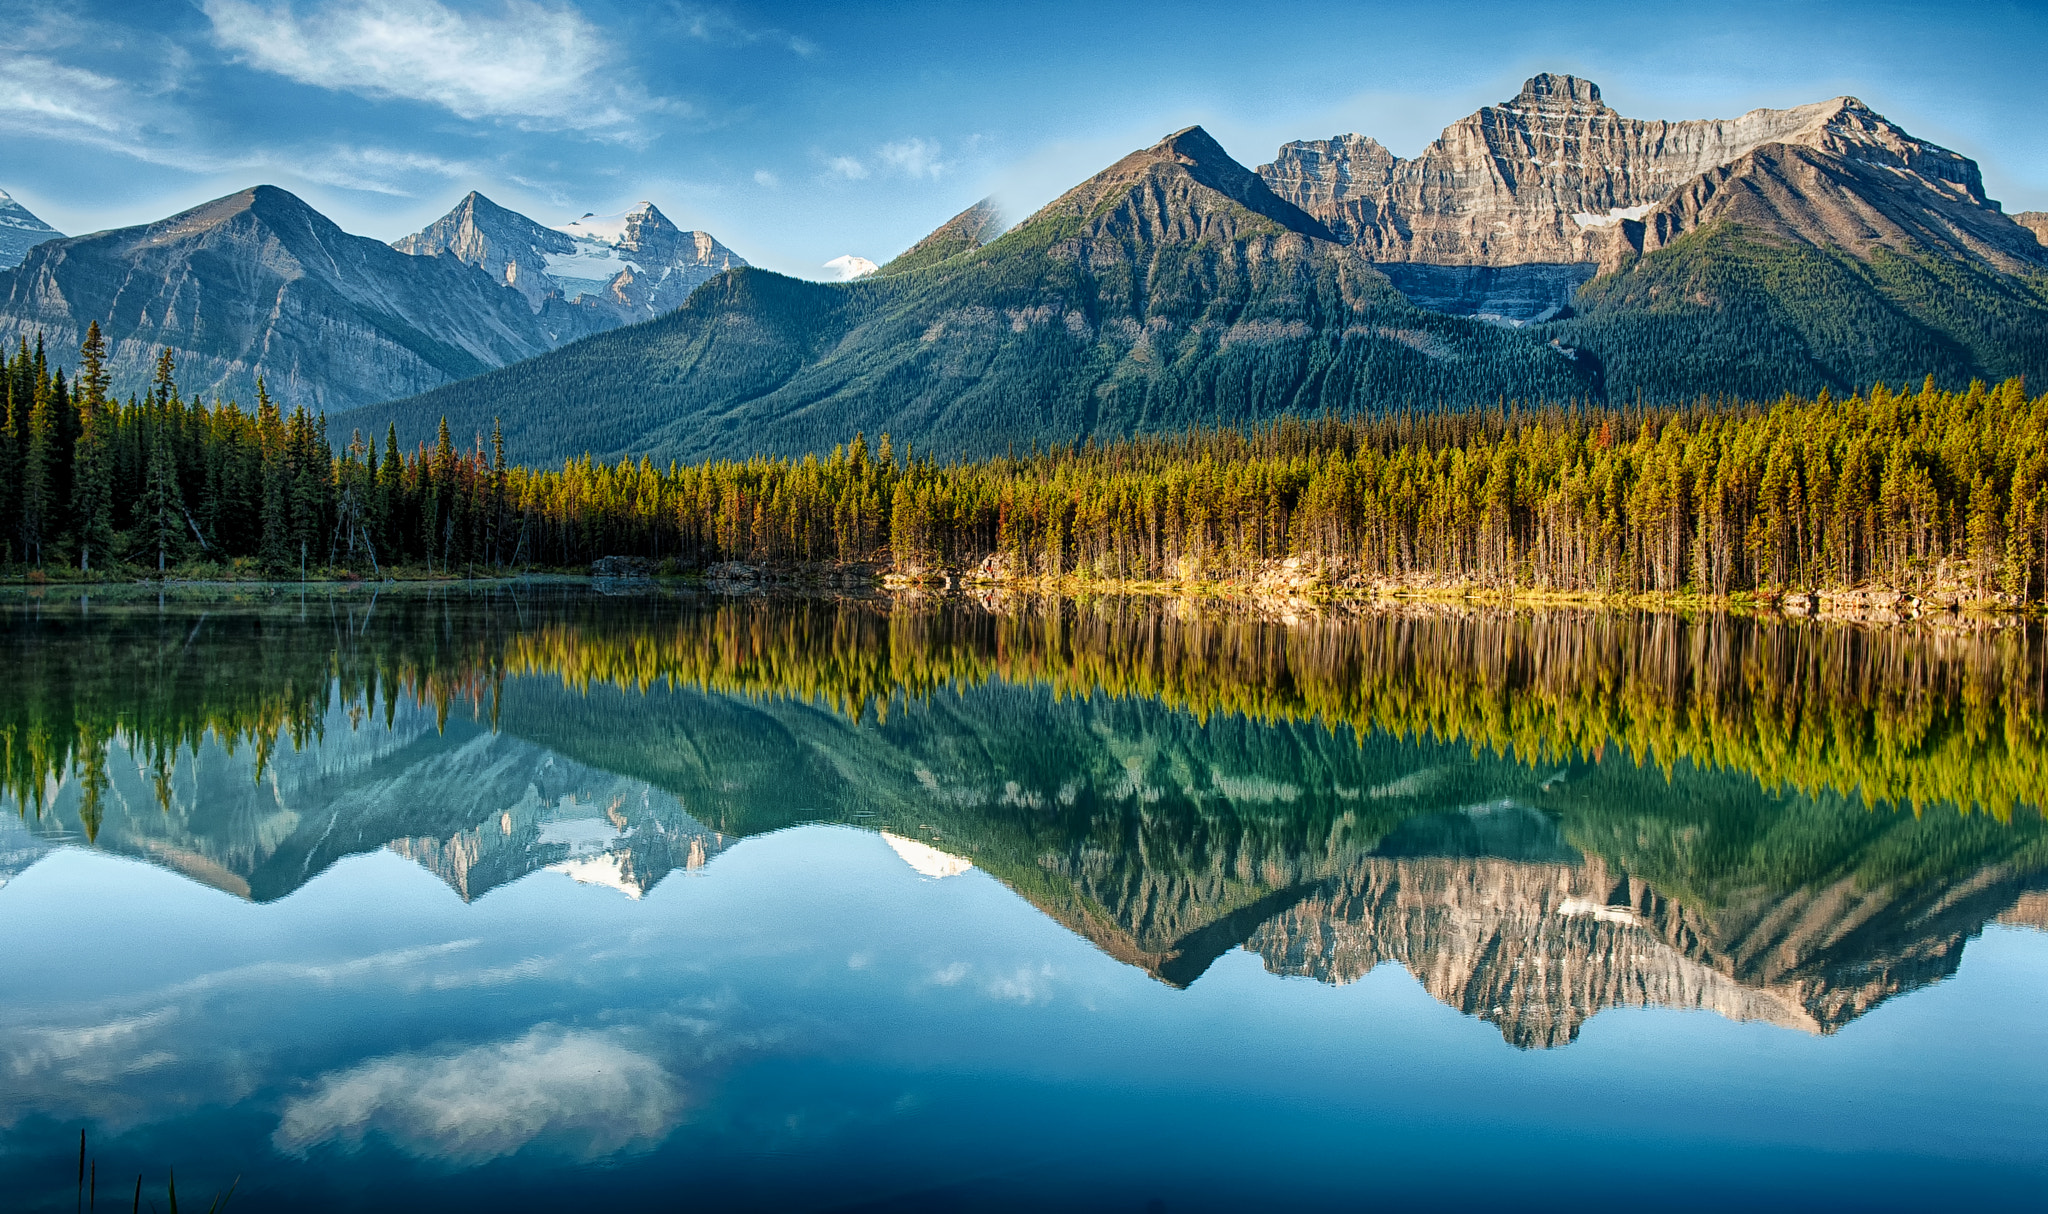 Photograph Herbert  Lake - Banff National Park by Jeff Clow on 500px